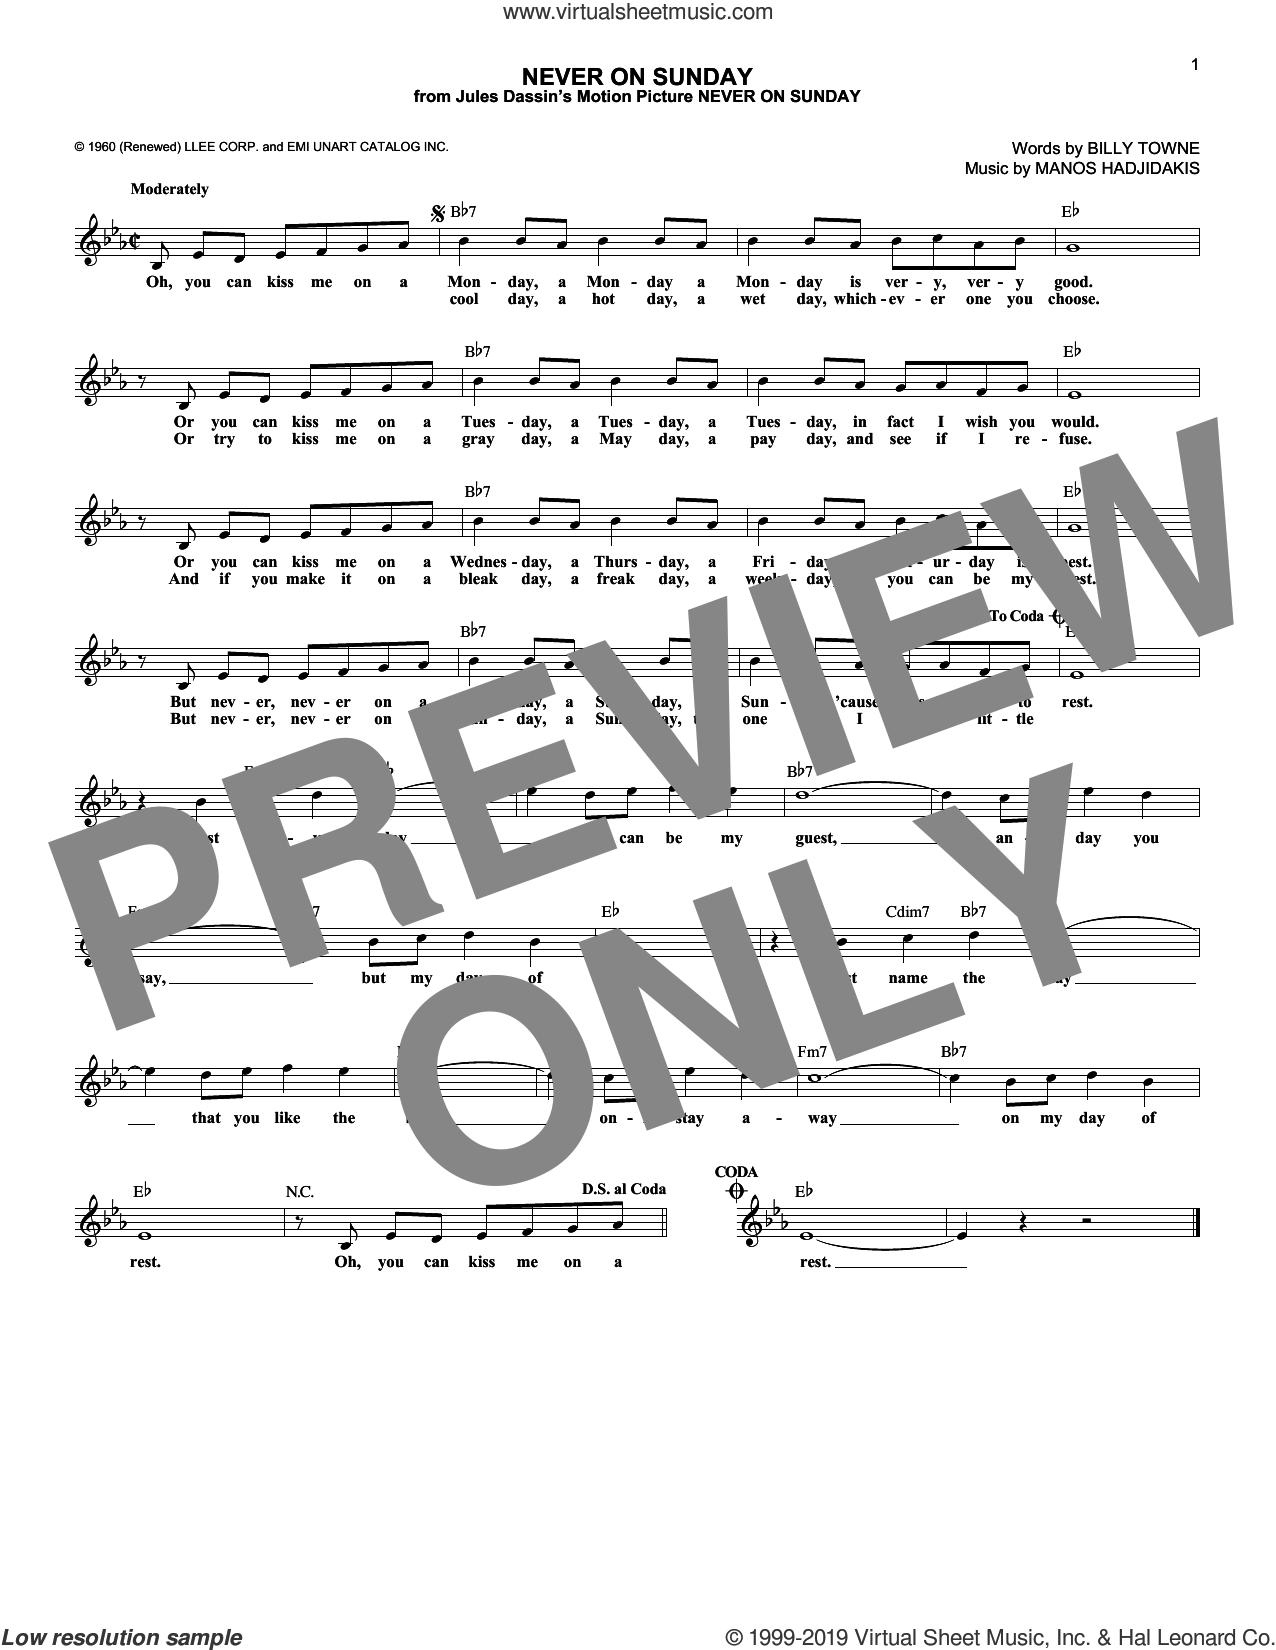 Never On Sunday sheet music for voice and other instruments (fake book) by Manos Hadjidakis and Billy Towne, intermediate skill level